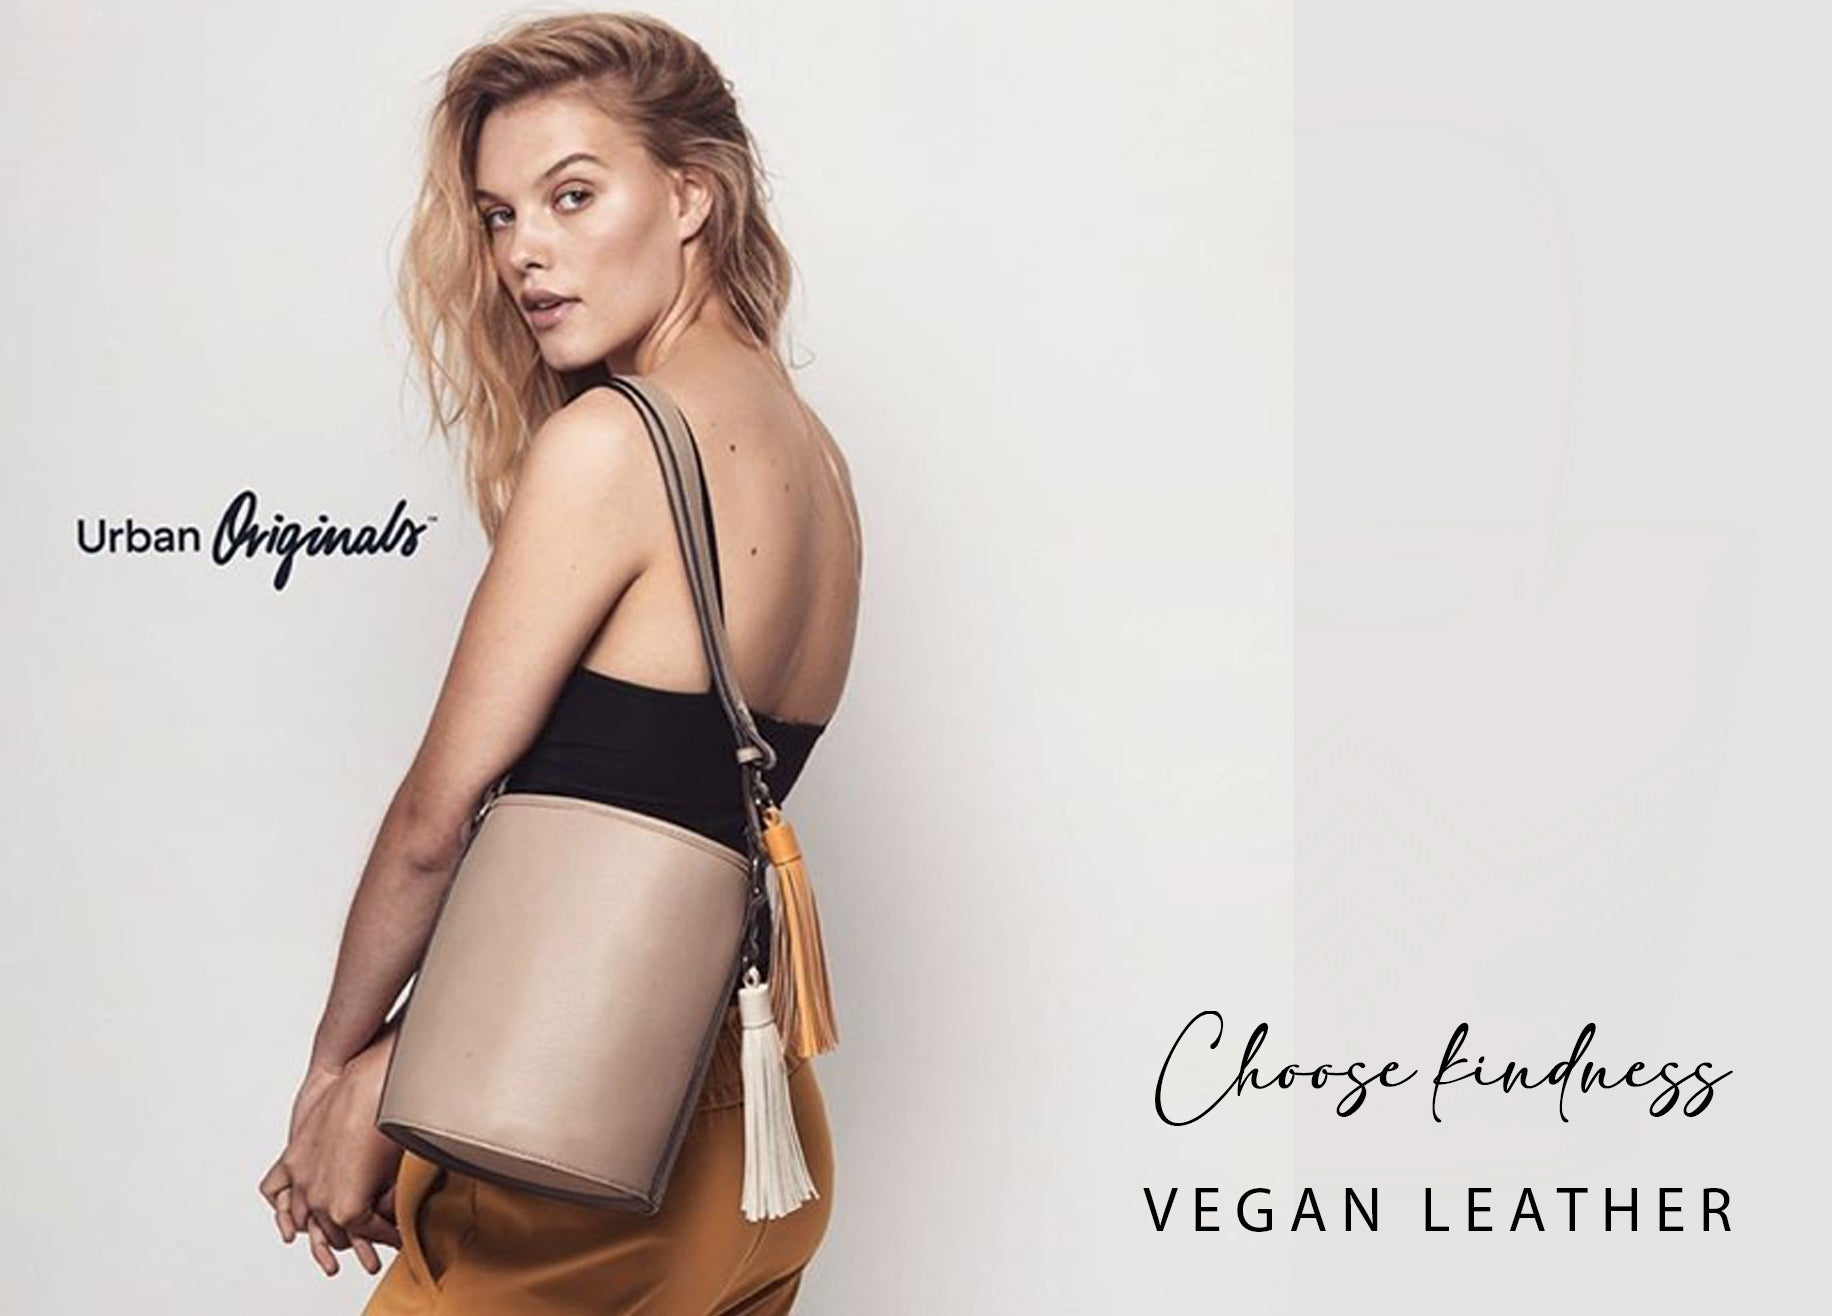 Urban_Orignals_Vegan_Leather